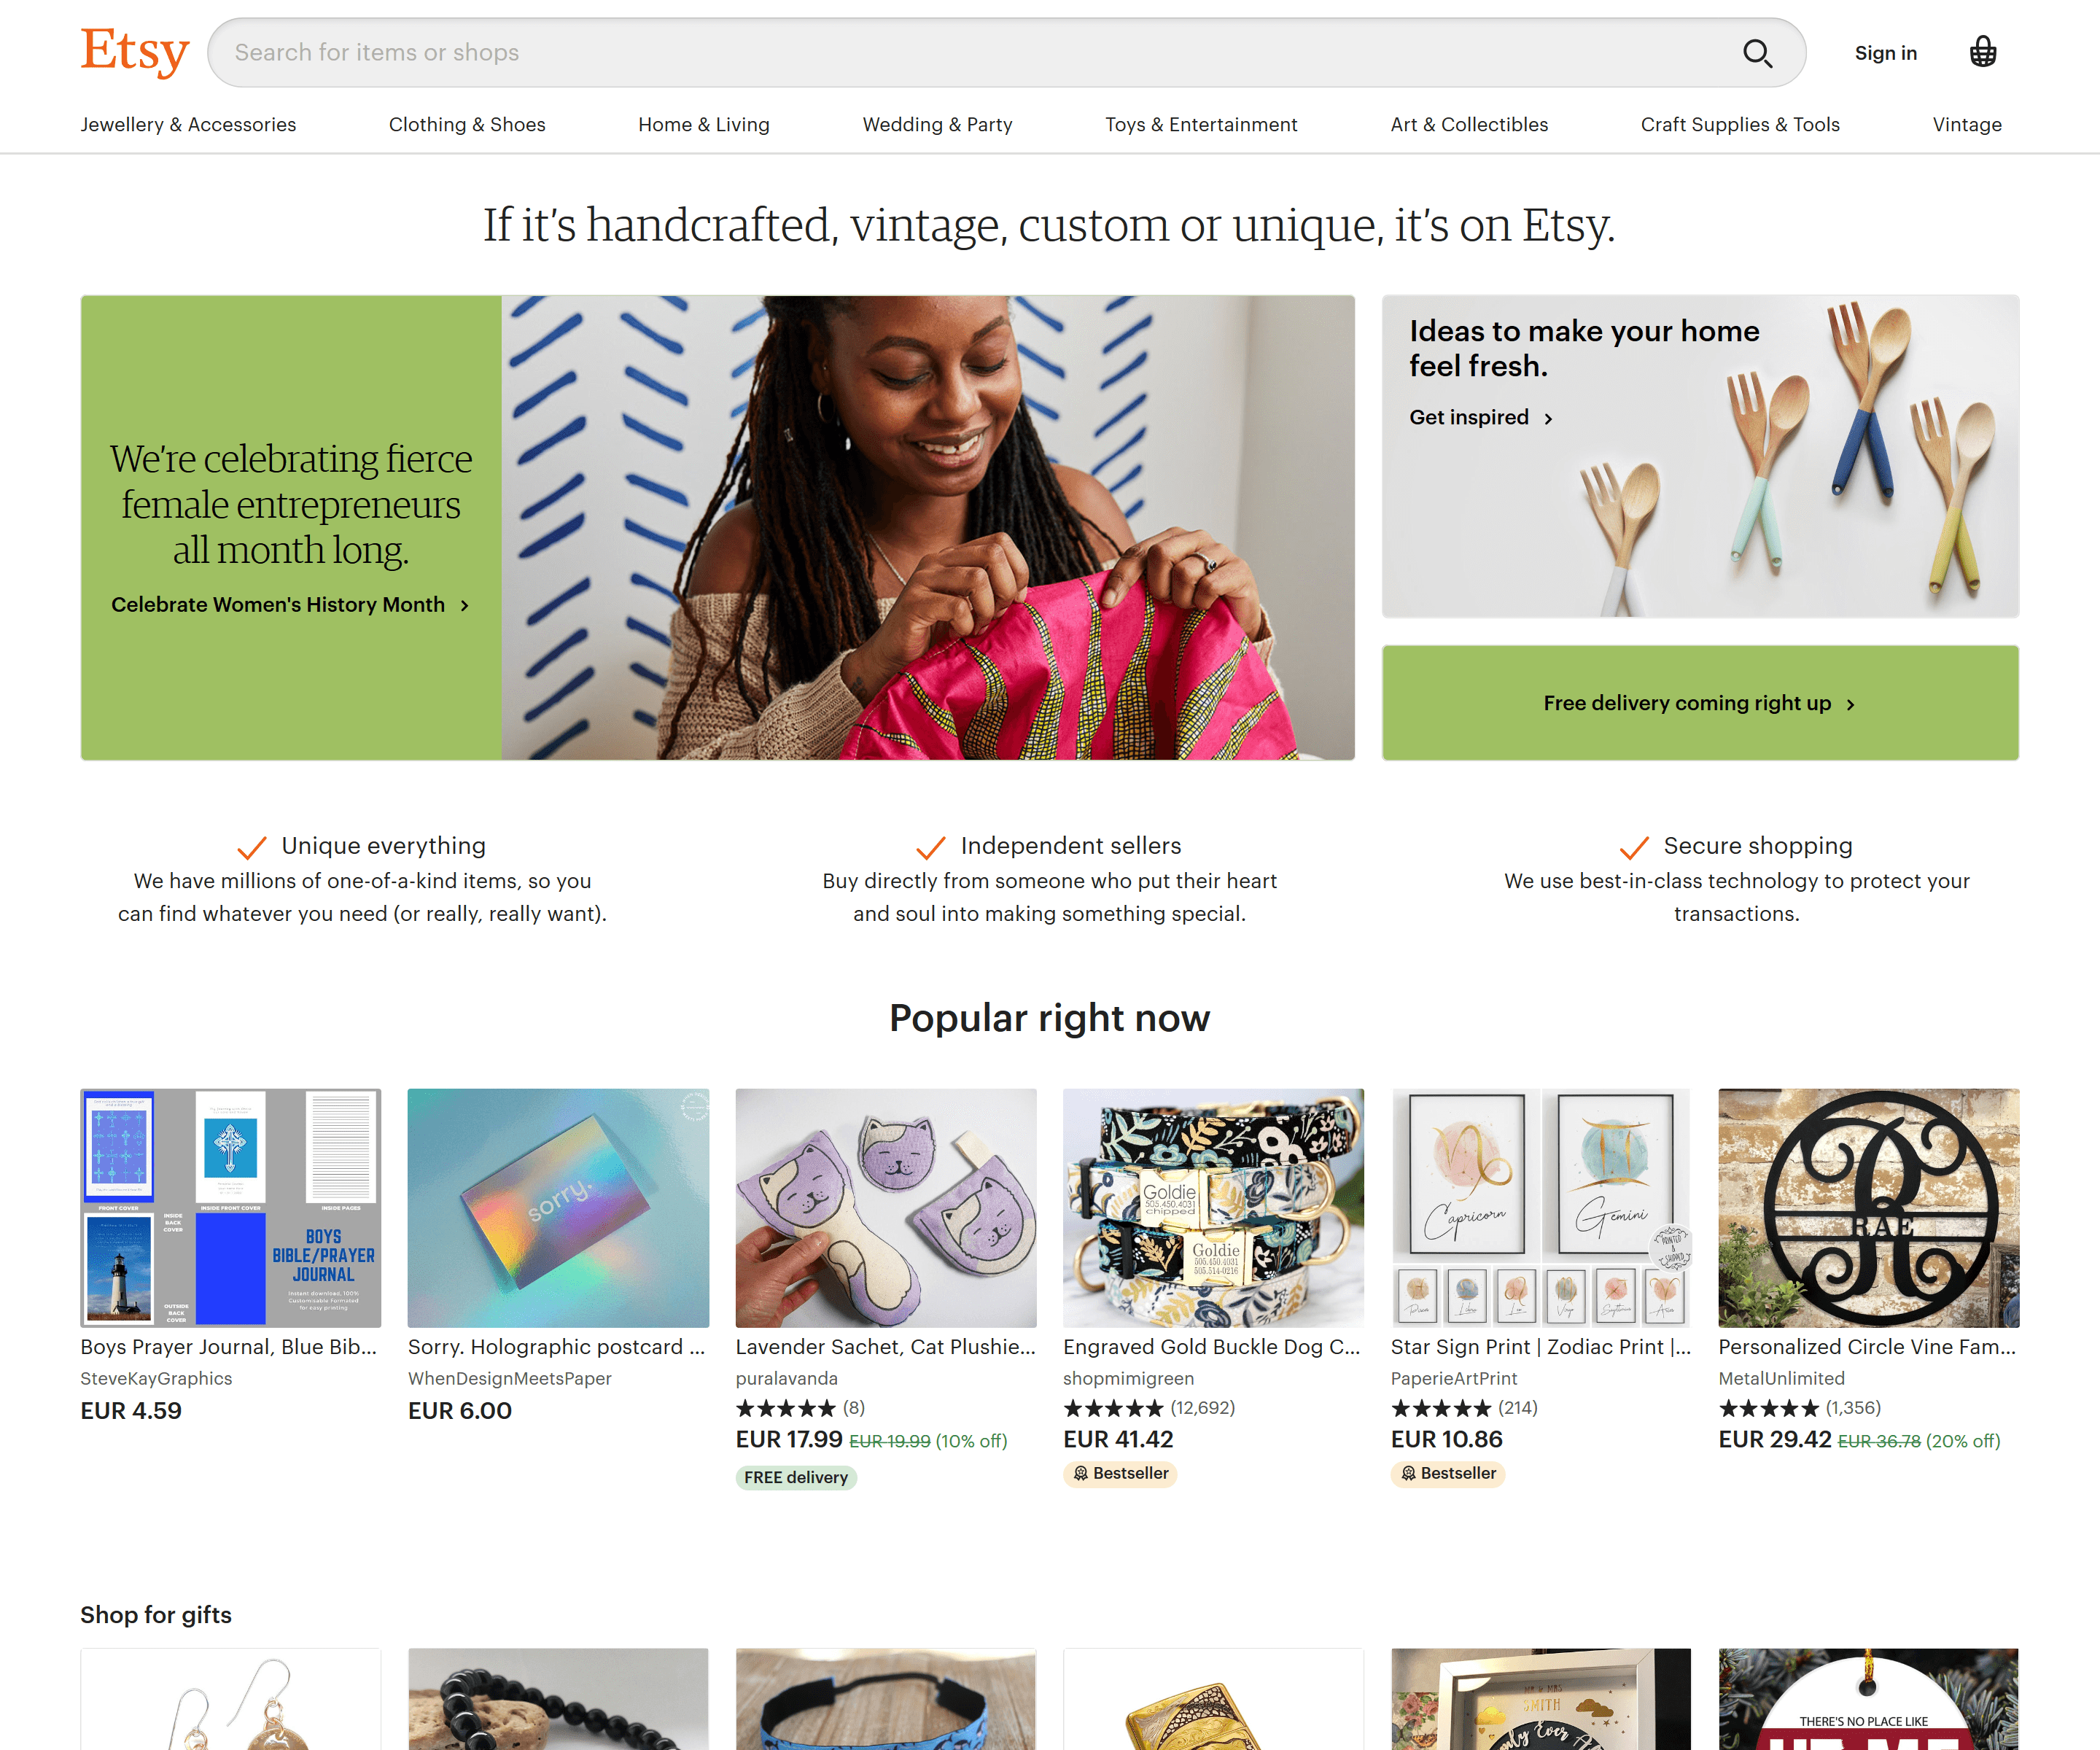 etsy product recommendations